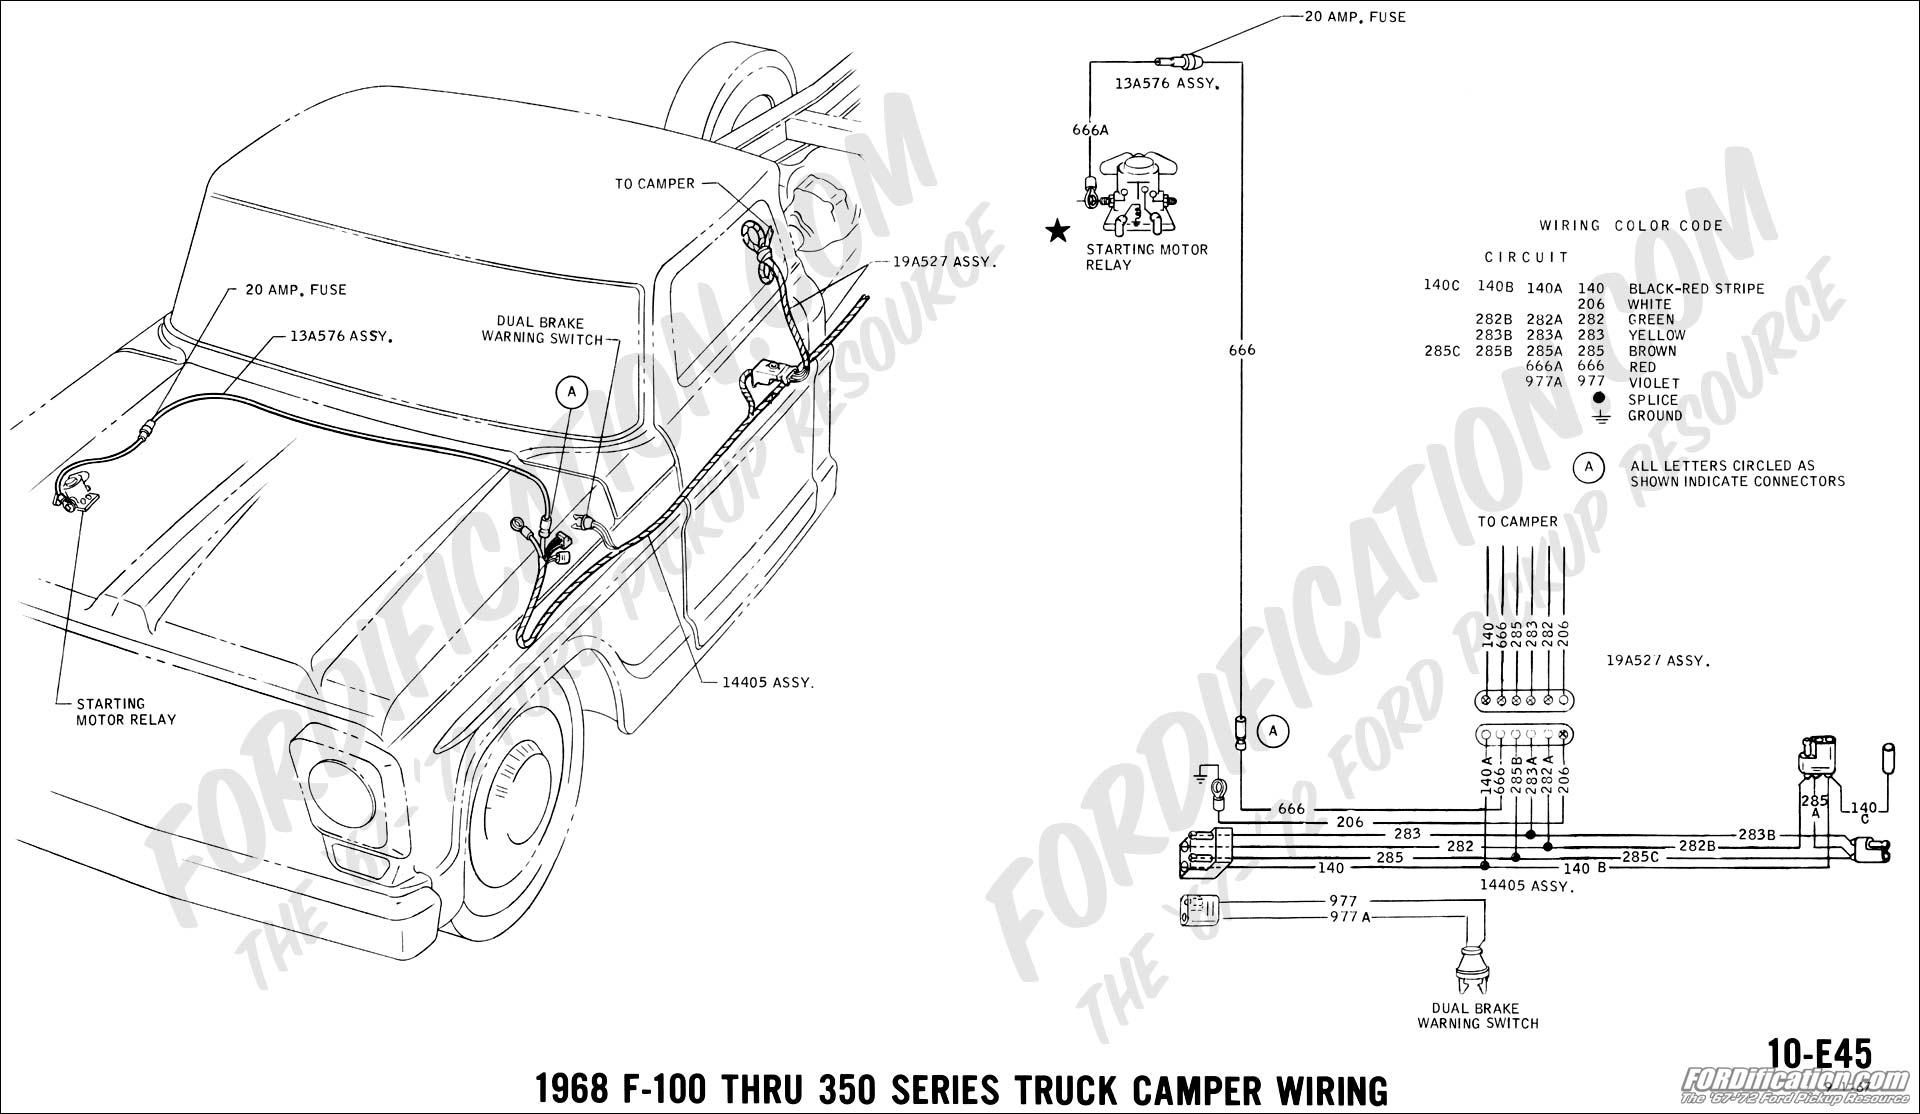 truck camper wiring diagram merzie net on truck camper wiring diagram